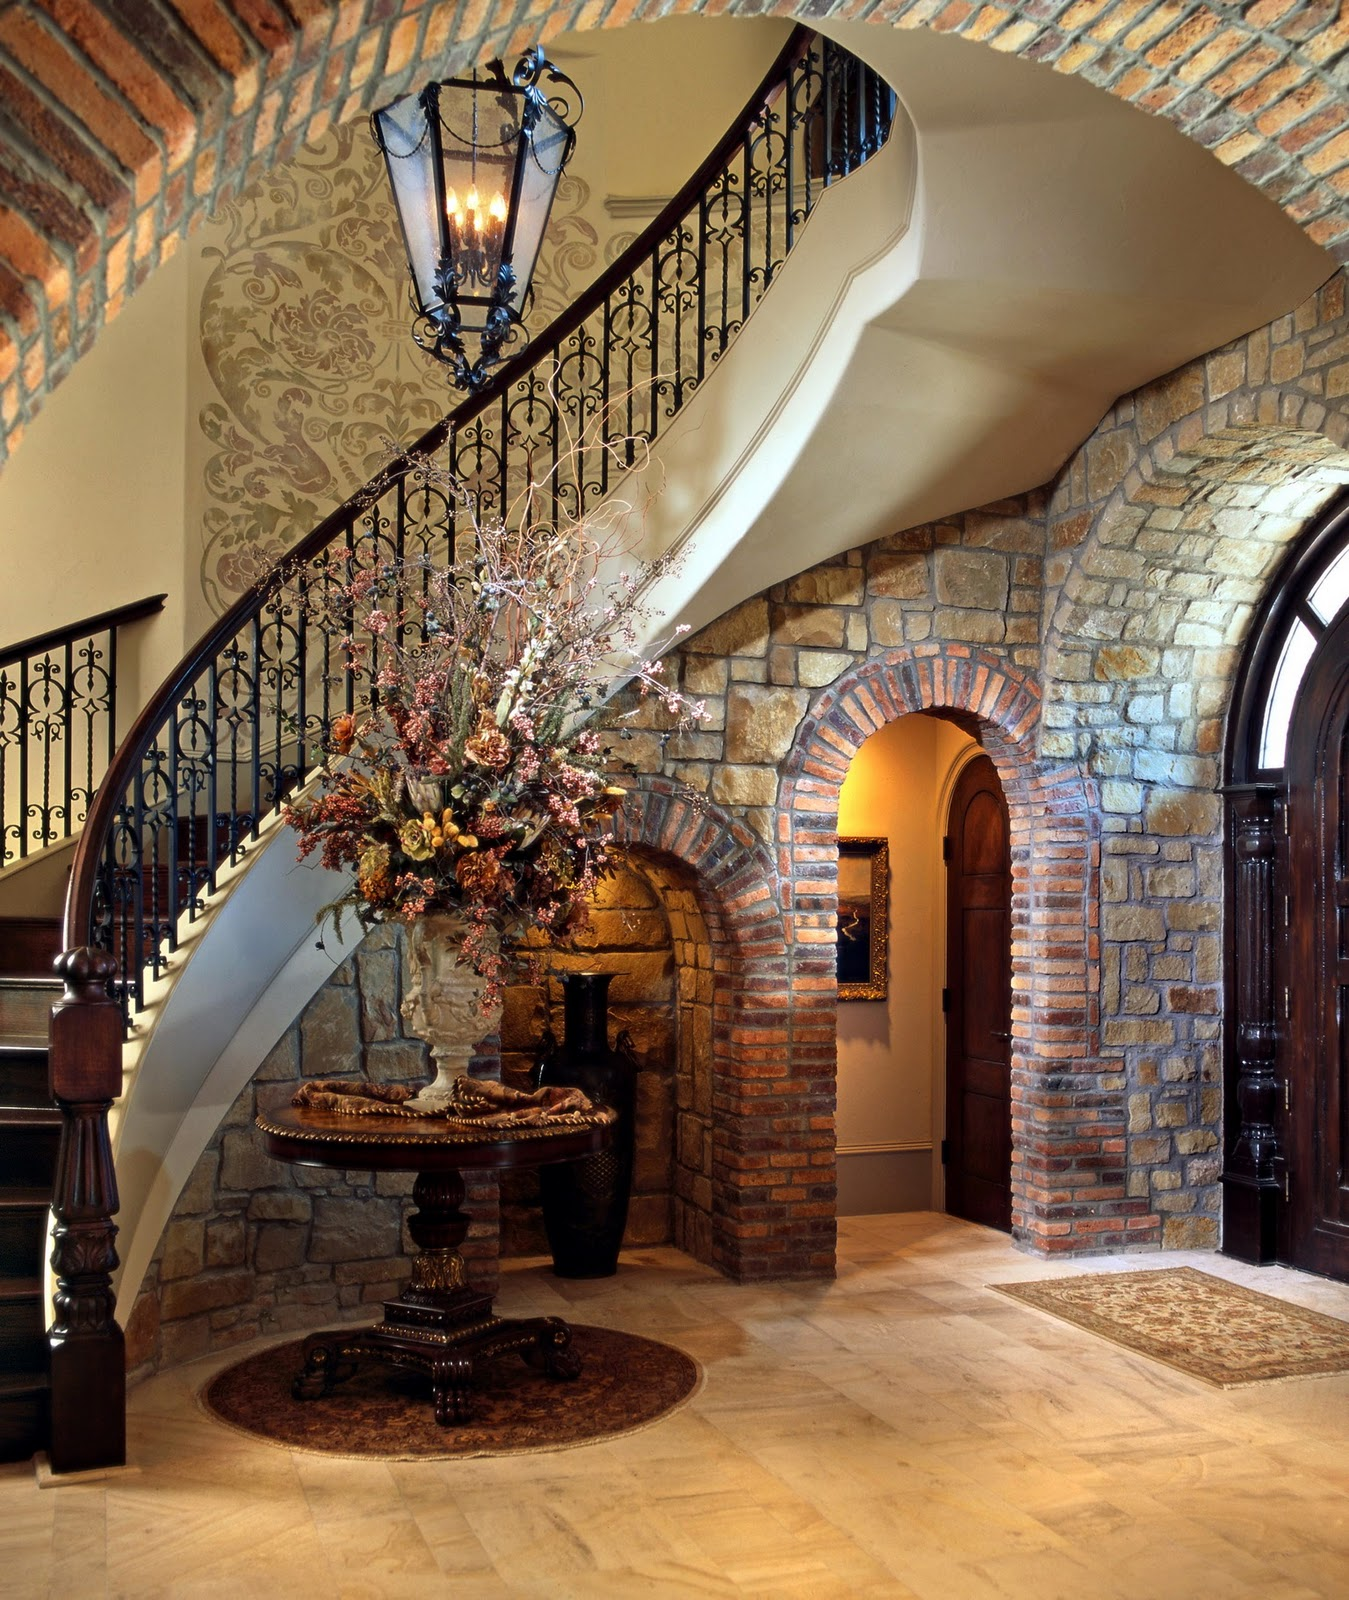 Home Interior Design: Stair Railings Interior